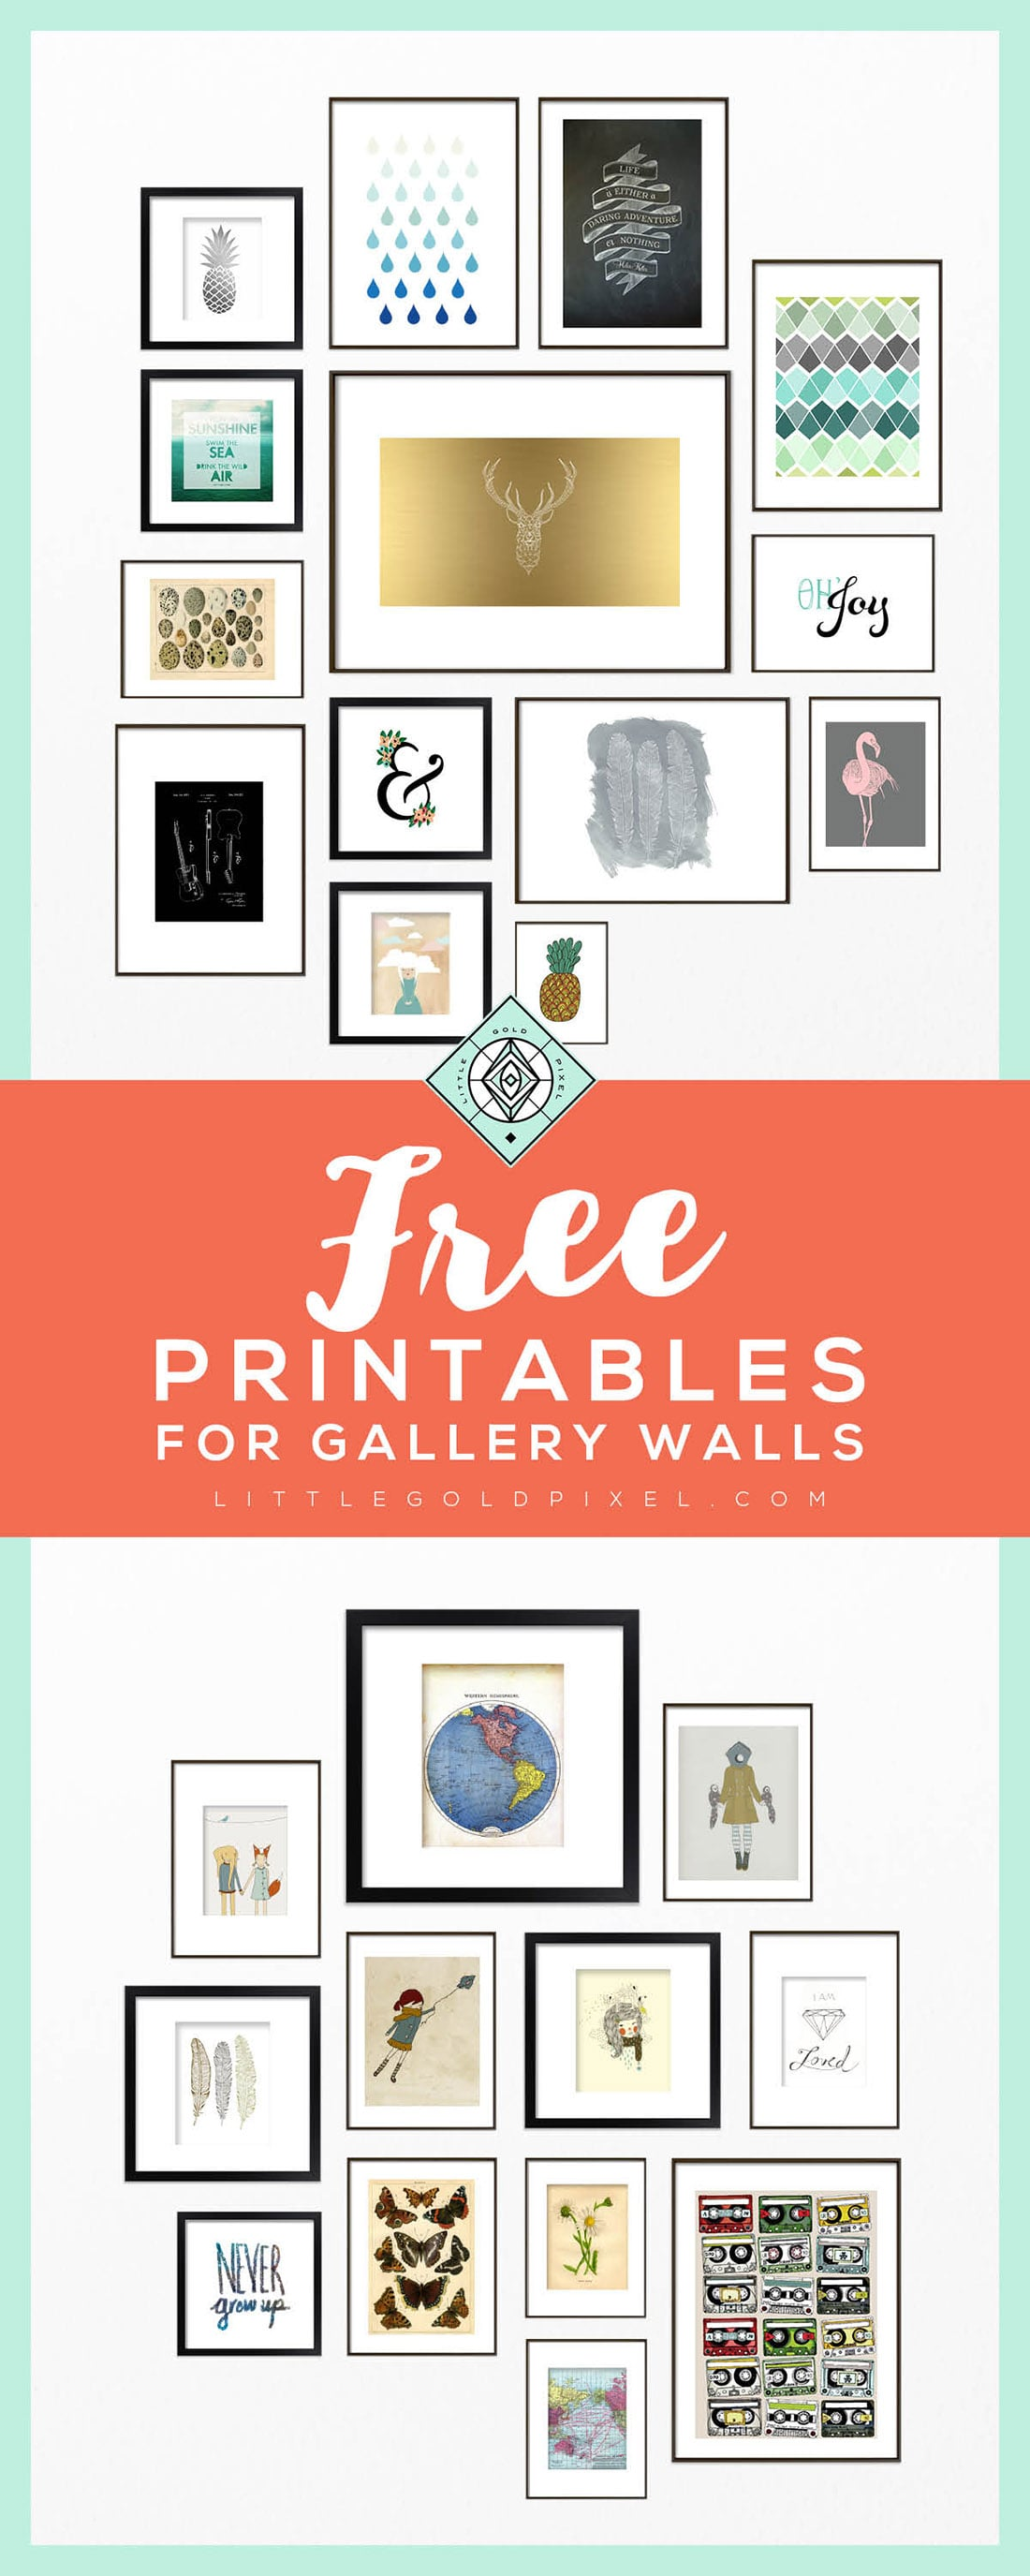 It's just a photo of Intrepid Gallery Wall Printables